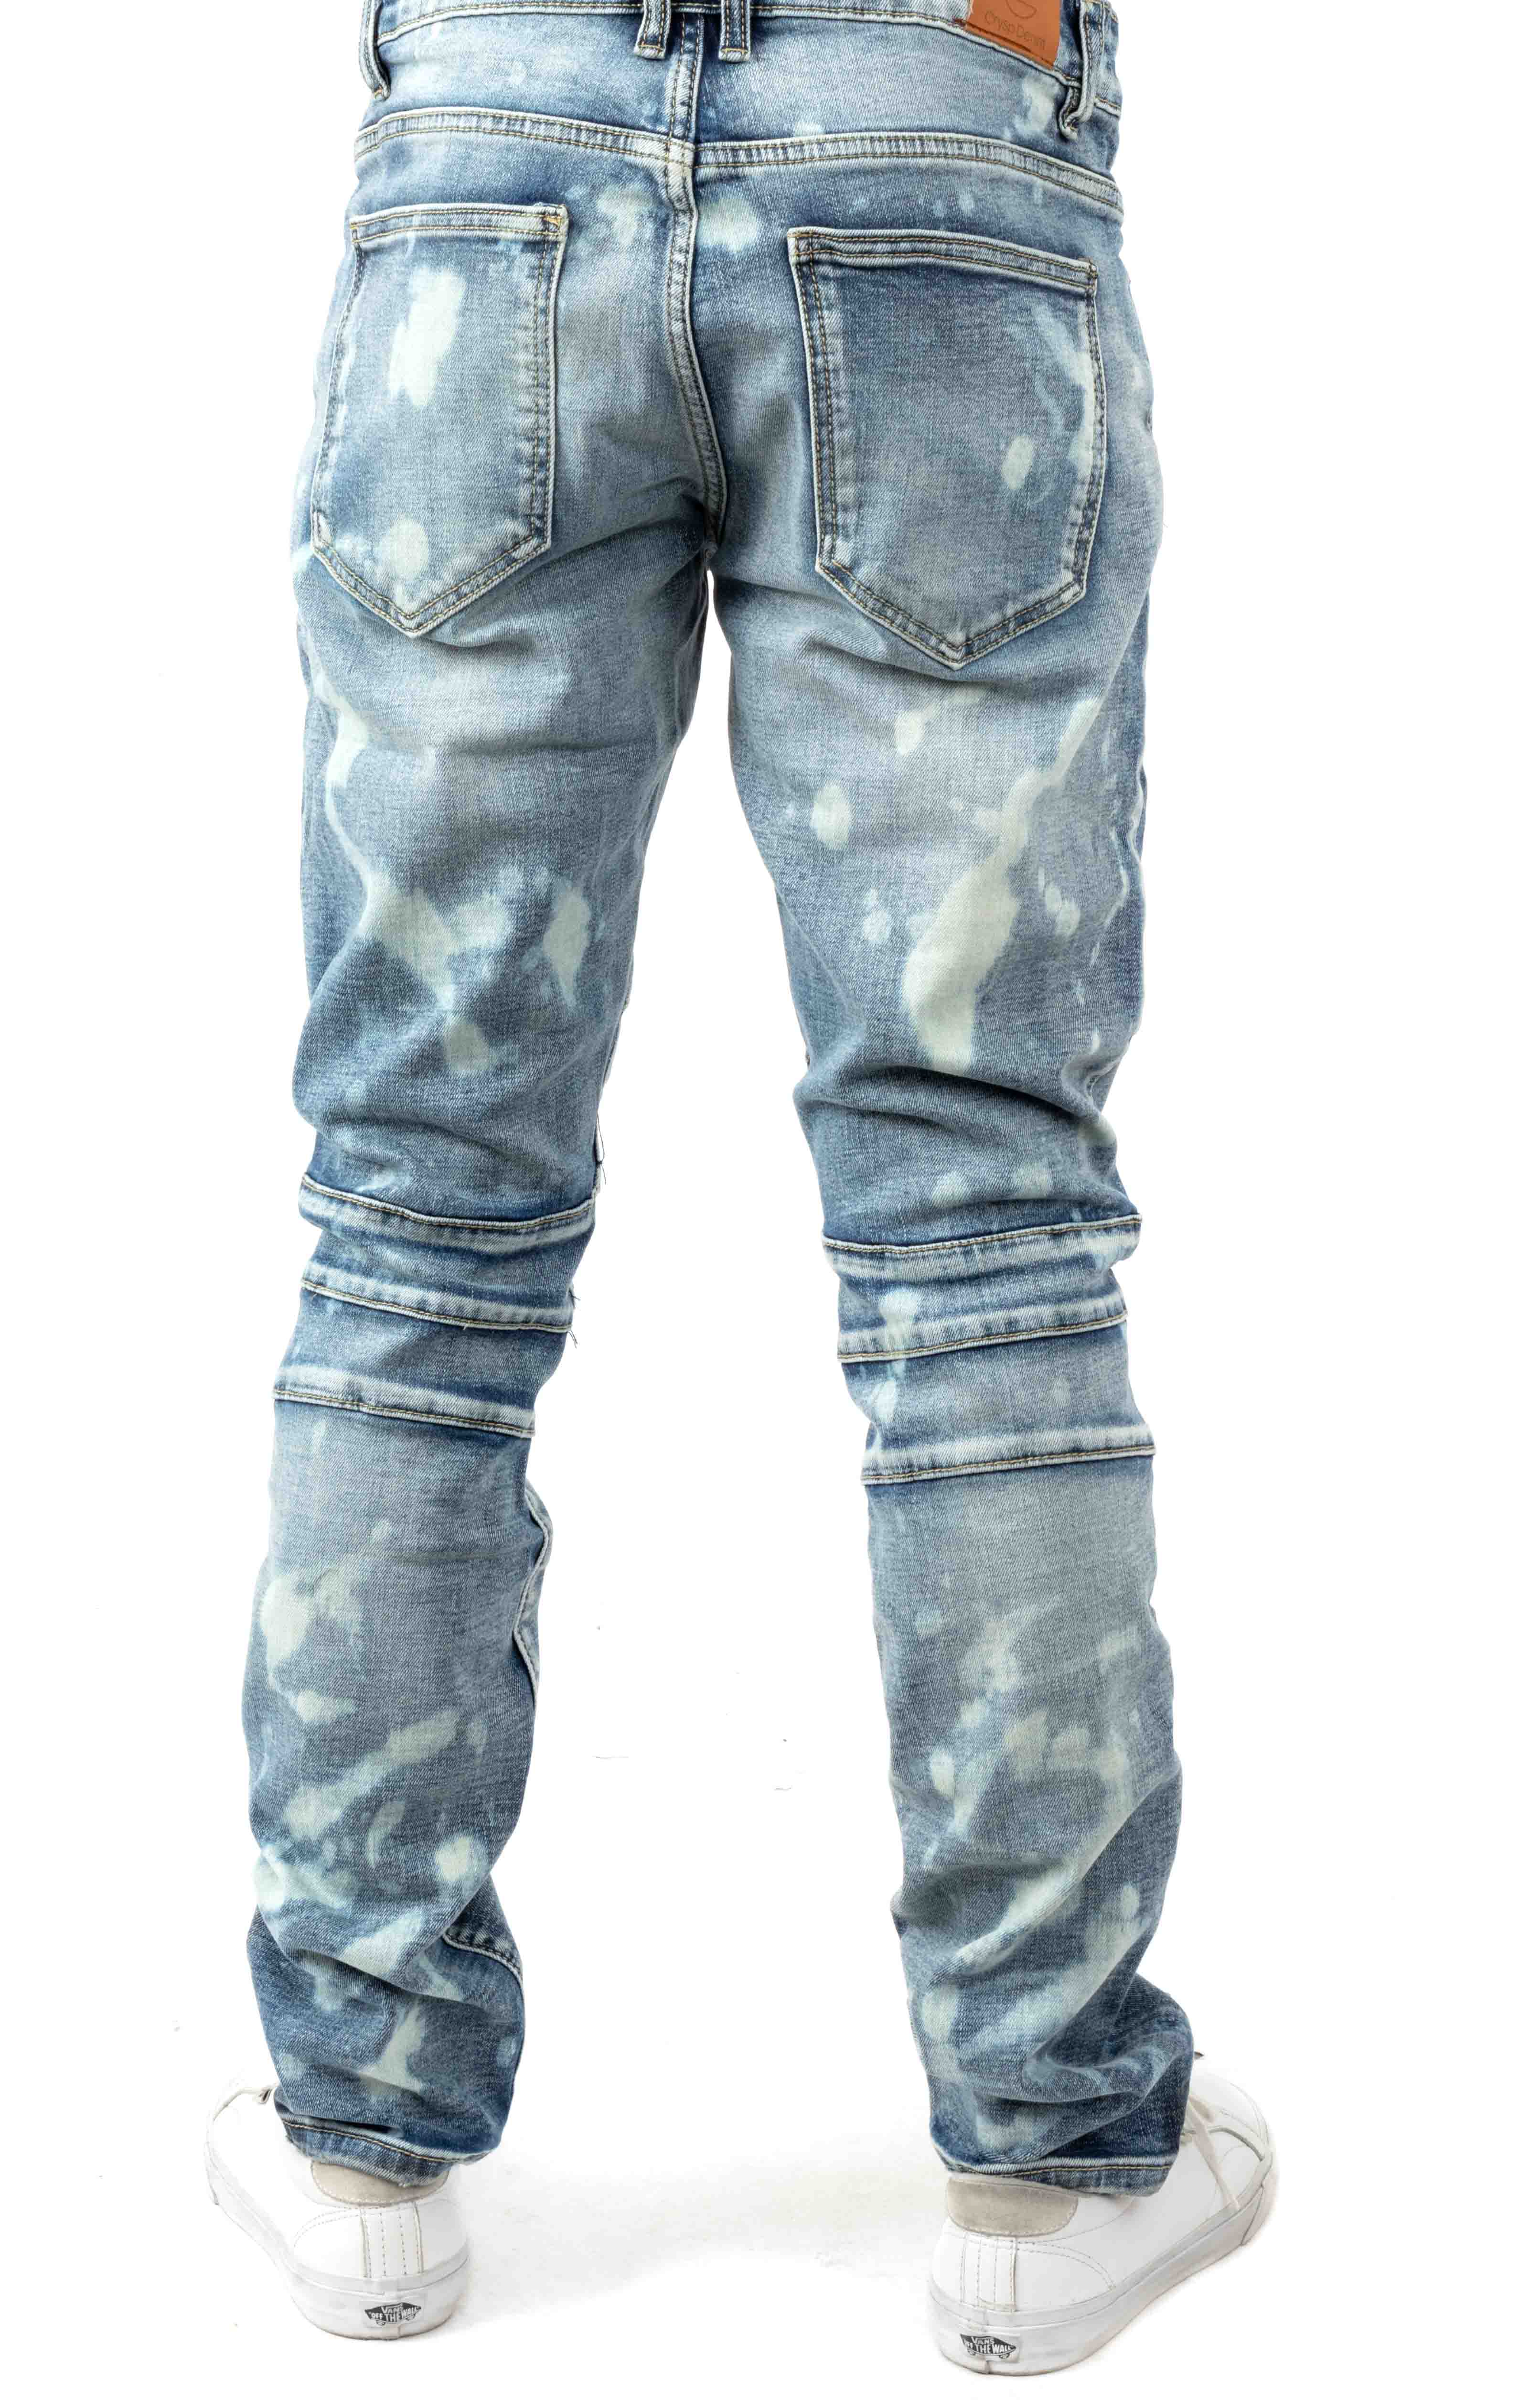 (CRYSP119-114) Montana Denim Jeans - Light Blue 3